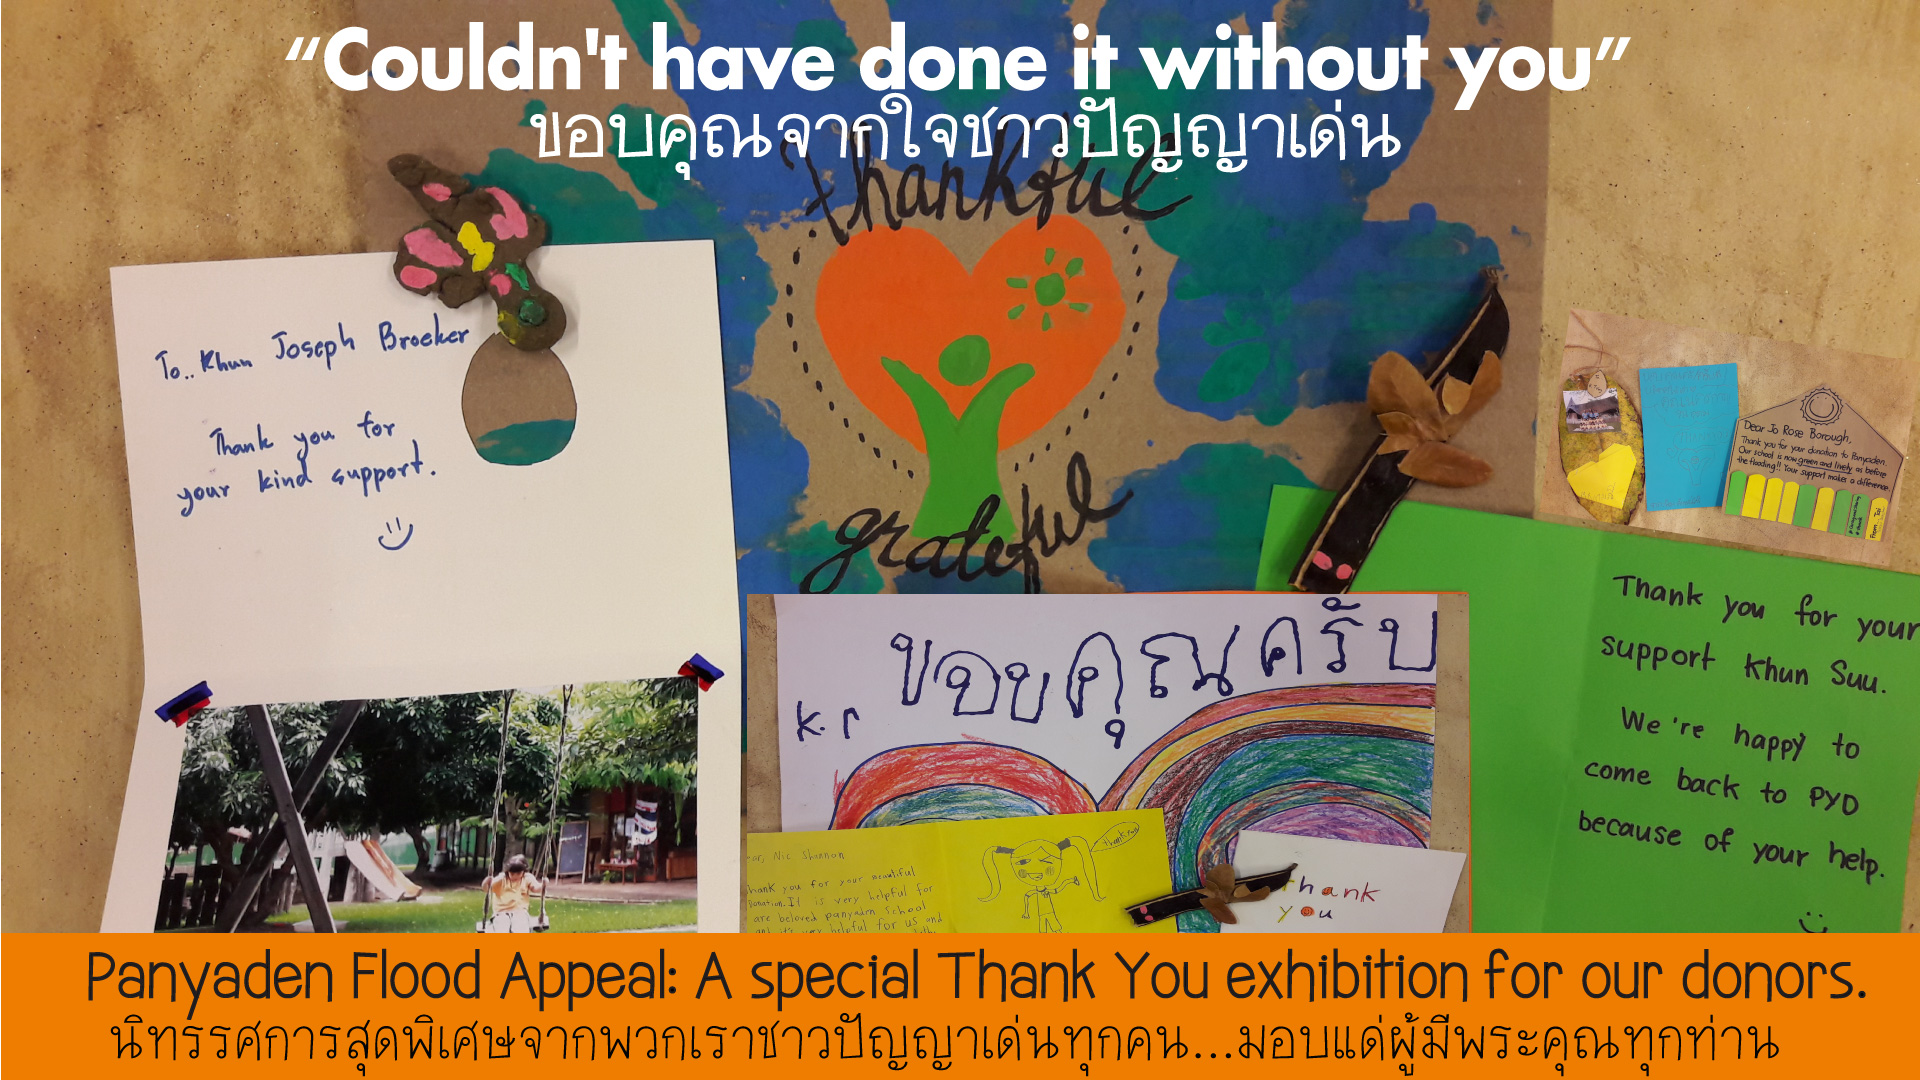 Panyaden Flood Appeal thank you exhibition